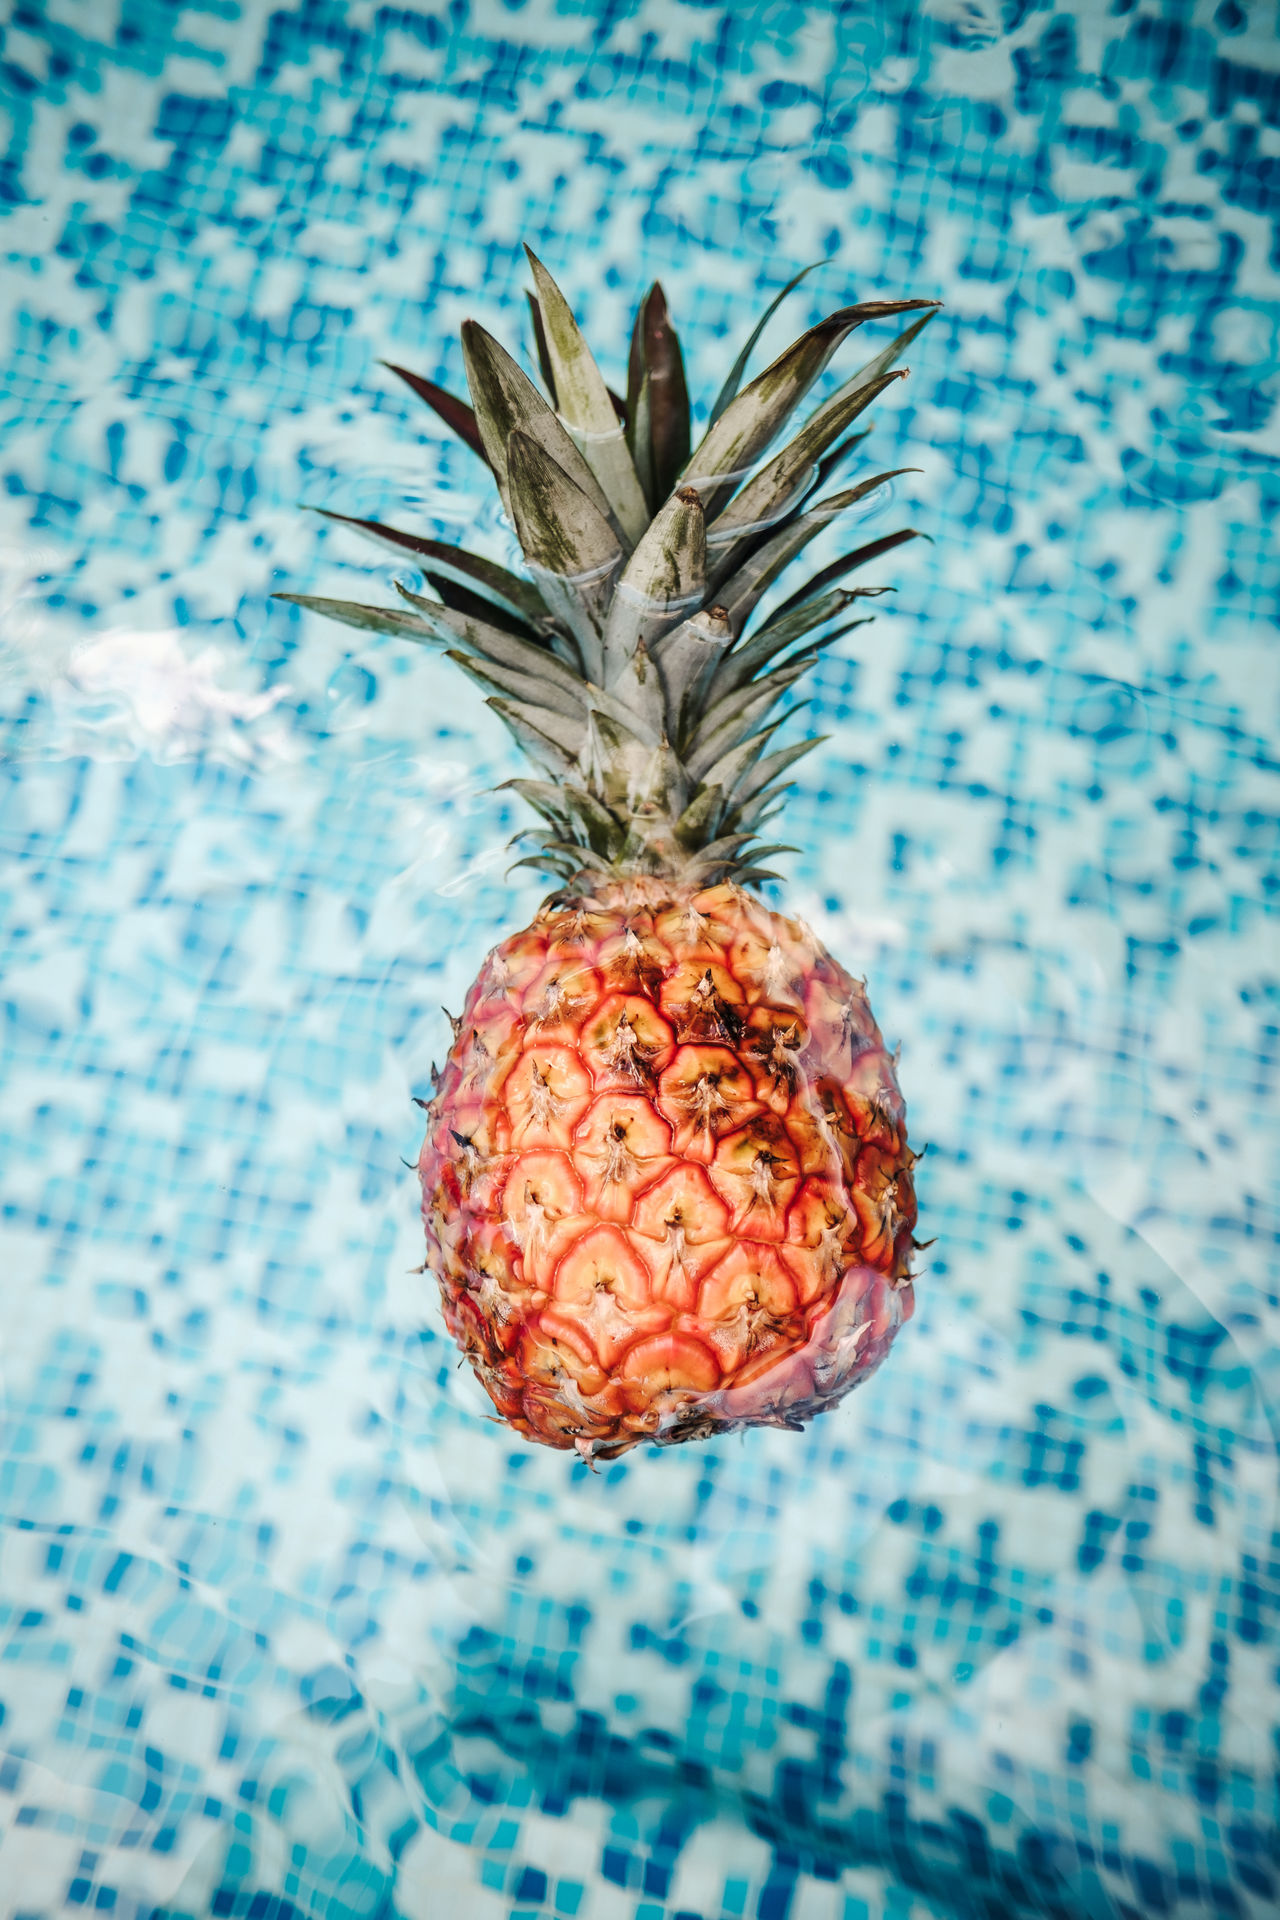 Summer is here. Ananas Beauty In Nature Close-up Day Floating On Water Focus On Foreground Food Food And Drink Freshness Fruit Hanging Healthy Eating Indoors  Nature No People Pineapple Piña Red Summer Summertime Swimming Swimming Pool